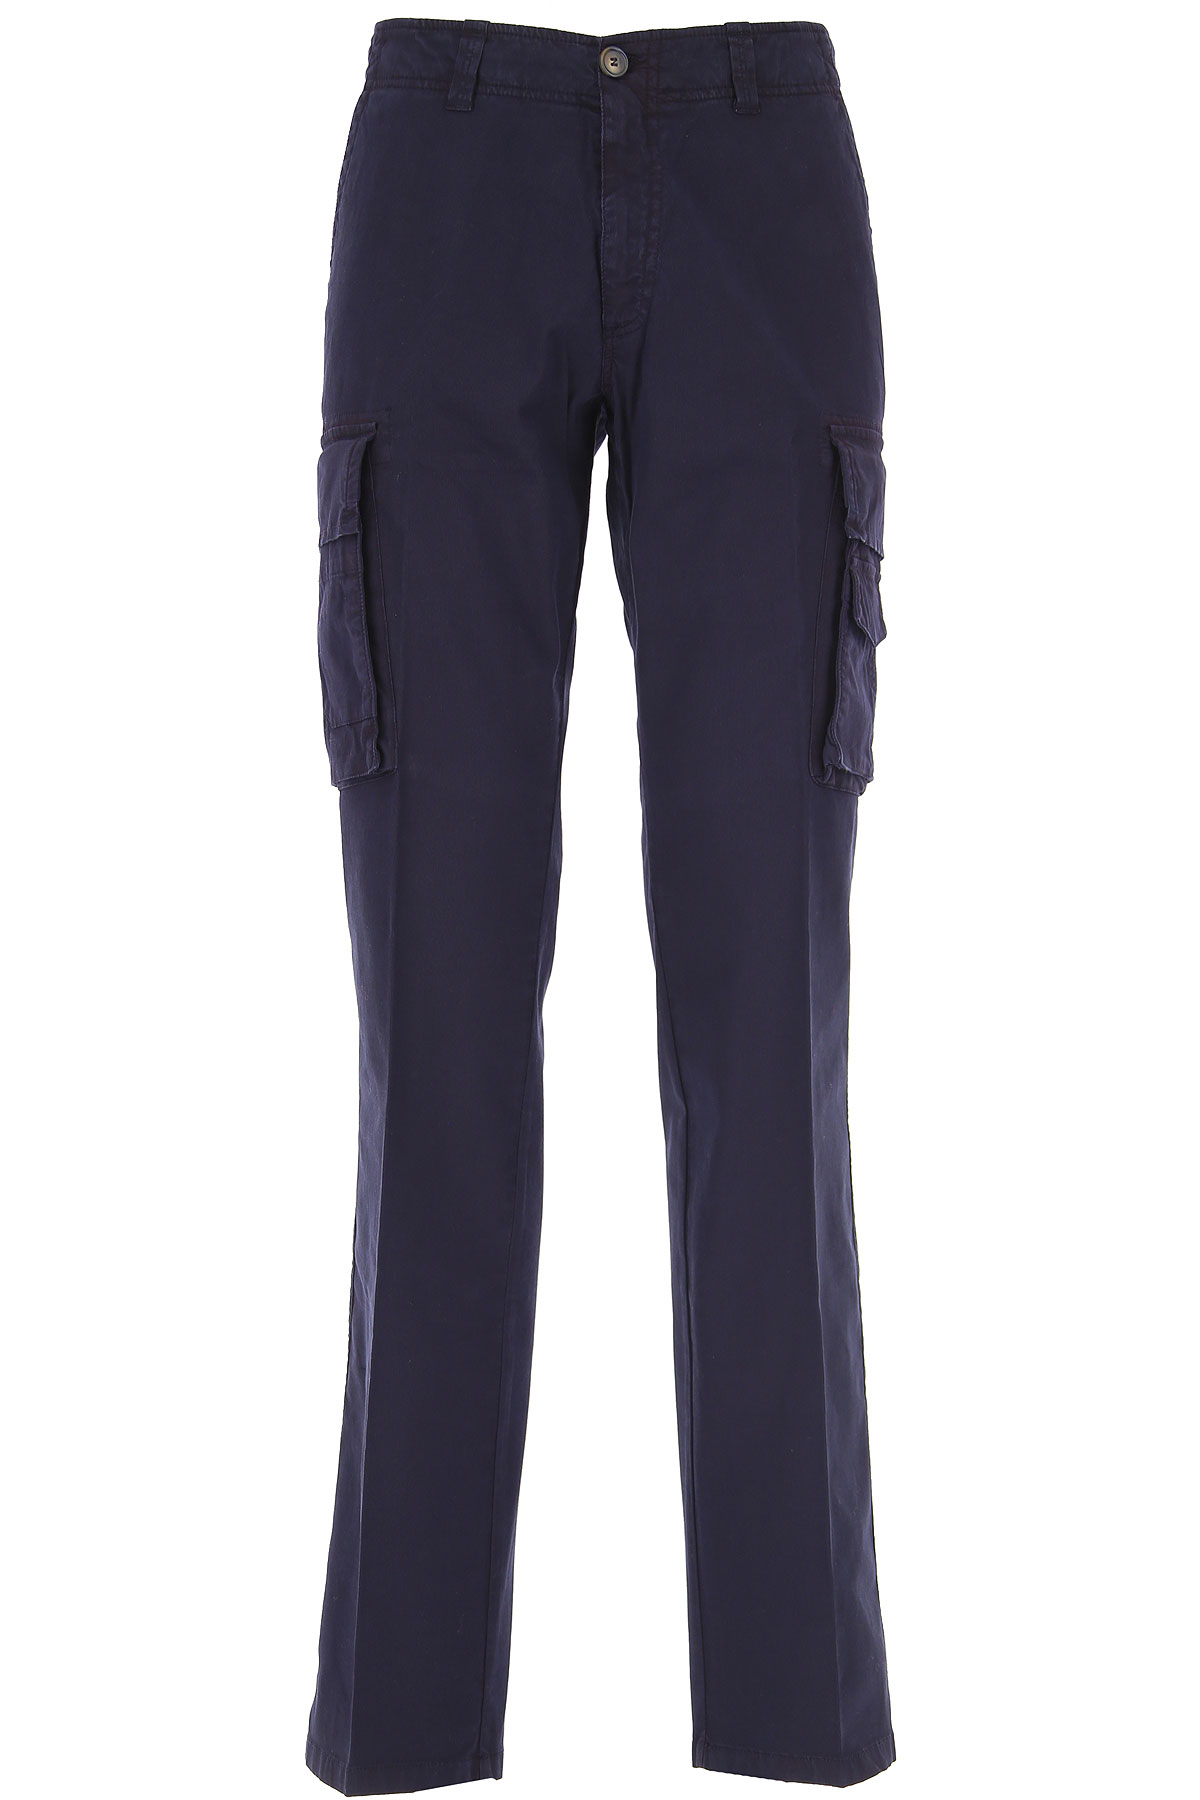 J.W. Brine Pants for Men On Sale, Navy Blue, Cotton, 2019, 30 32 34 36 38 40